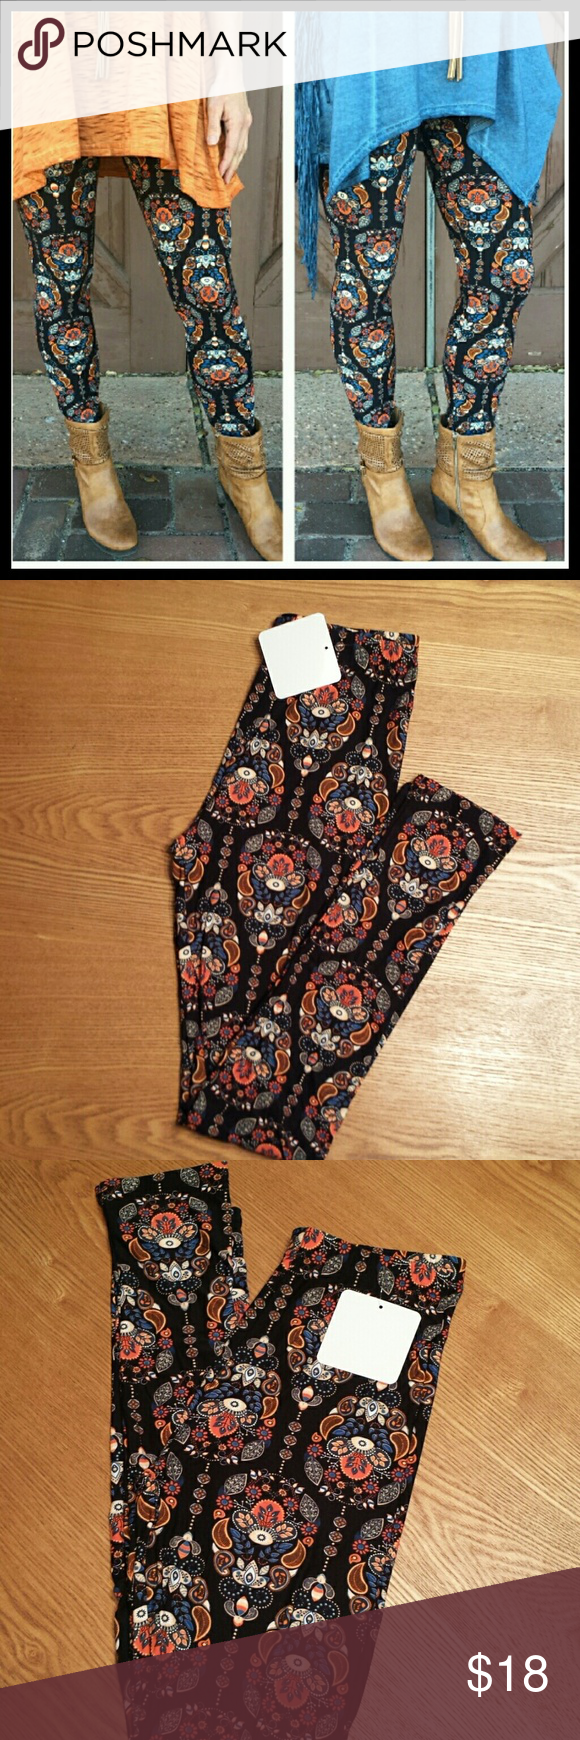 **NEW**Spring Paisley Print Leggings Super soft brushed knit leggings. 92% polyester 8% spandex. Fits size 2 to 12 comfortably. Infinity Raine Pants Leggings